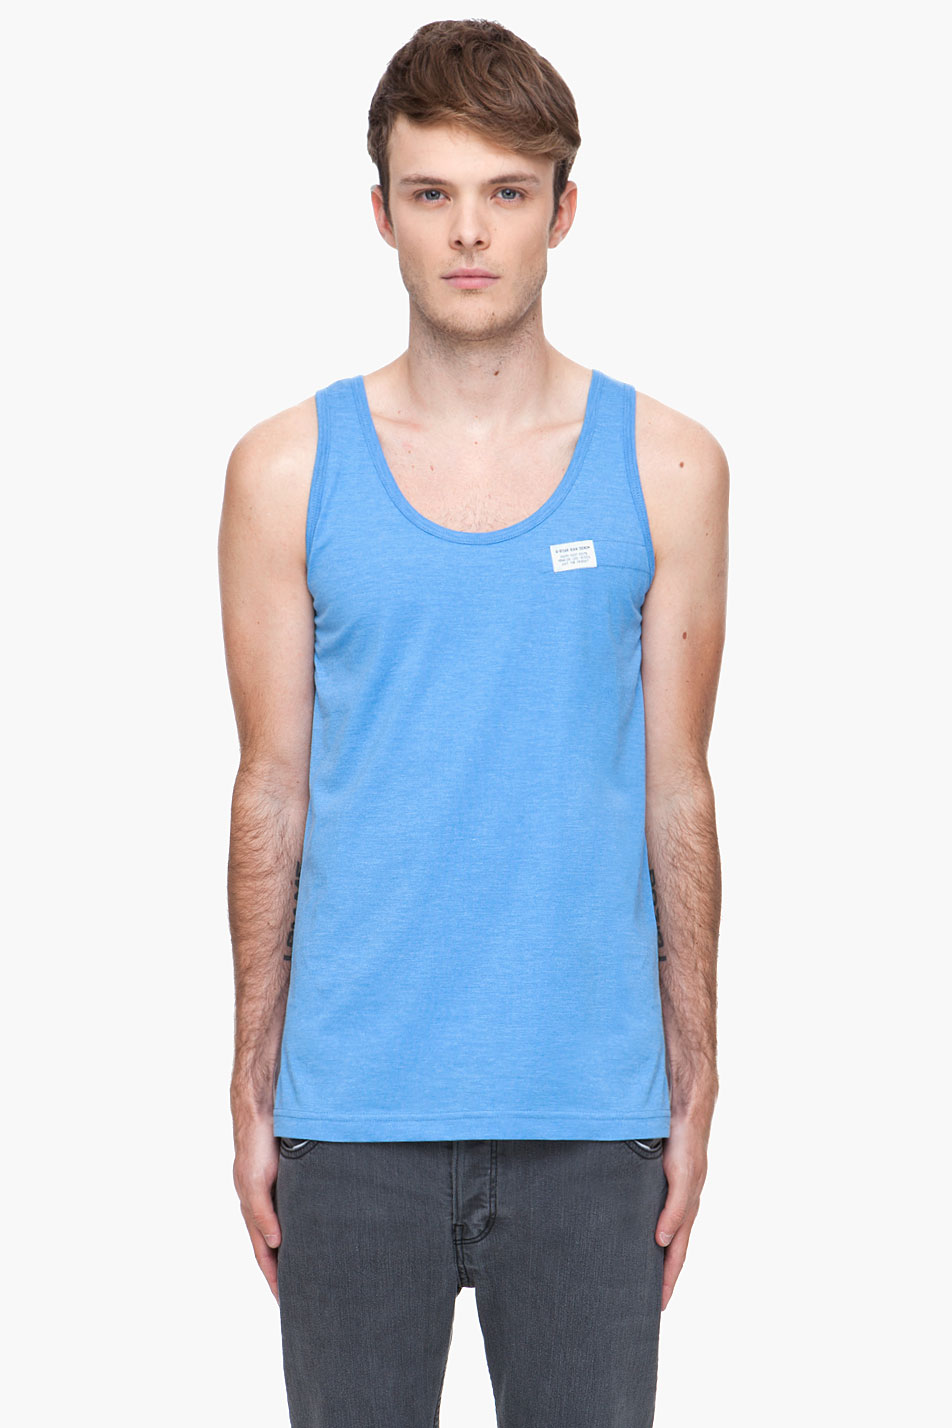 g star raw blue scout tank top in blue for men lyst. Black Bedroom Furniture Sets. Home Design Ideas